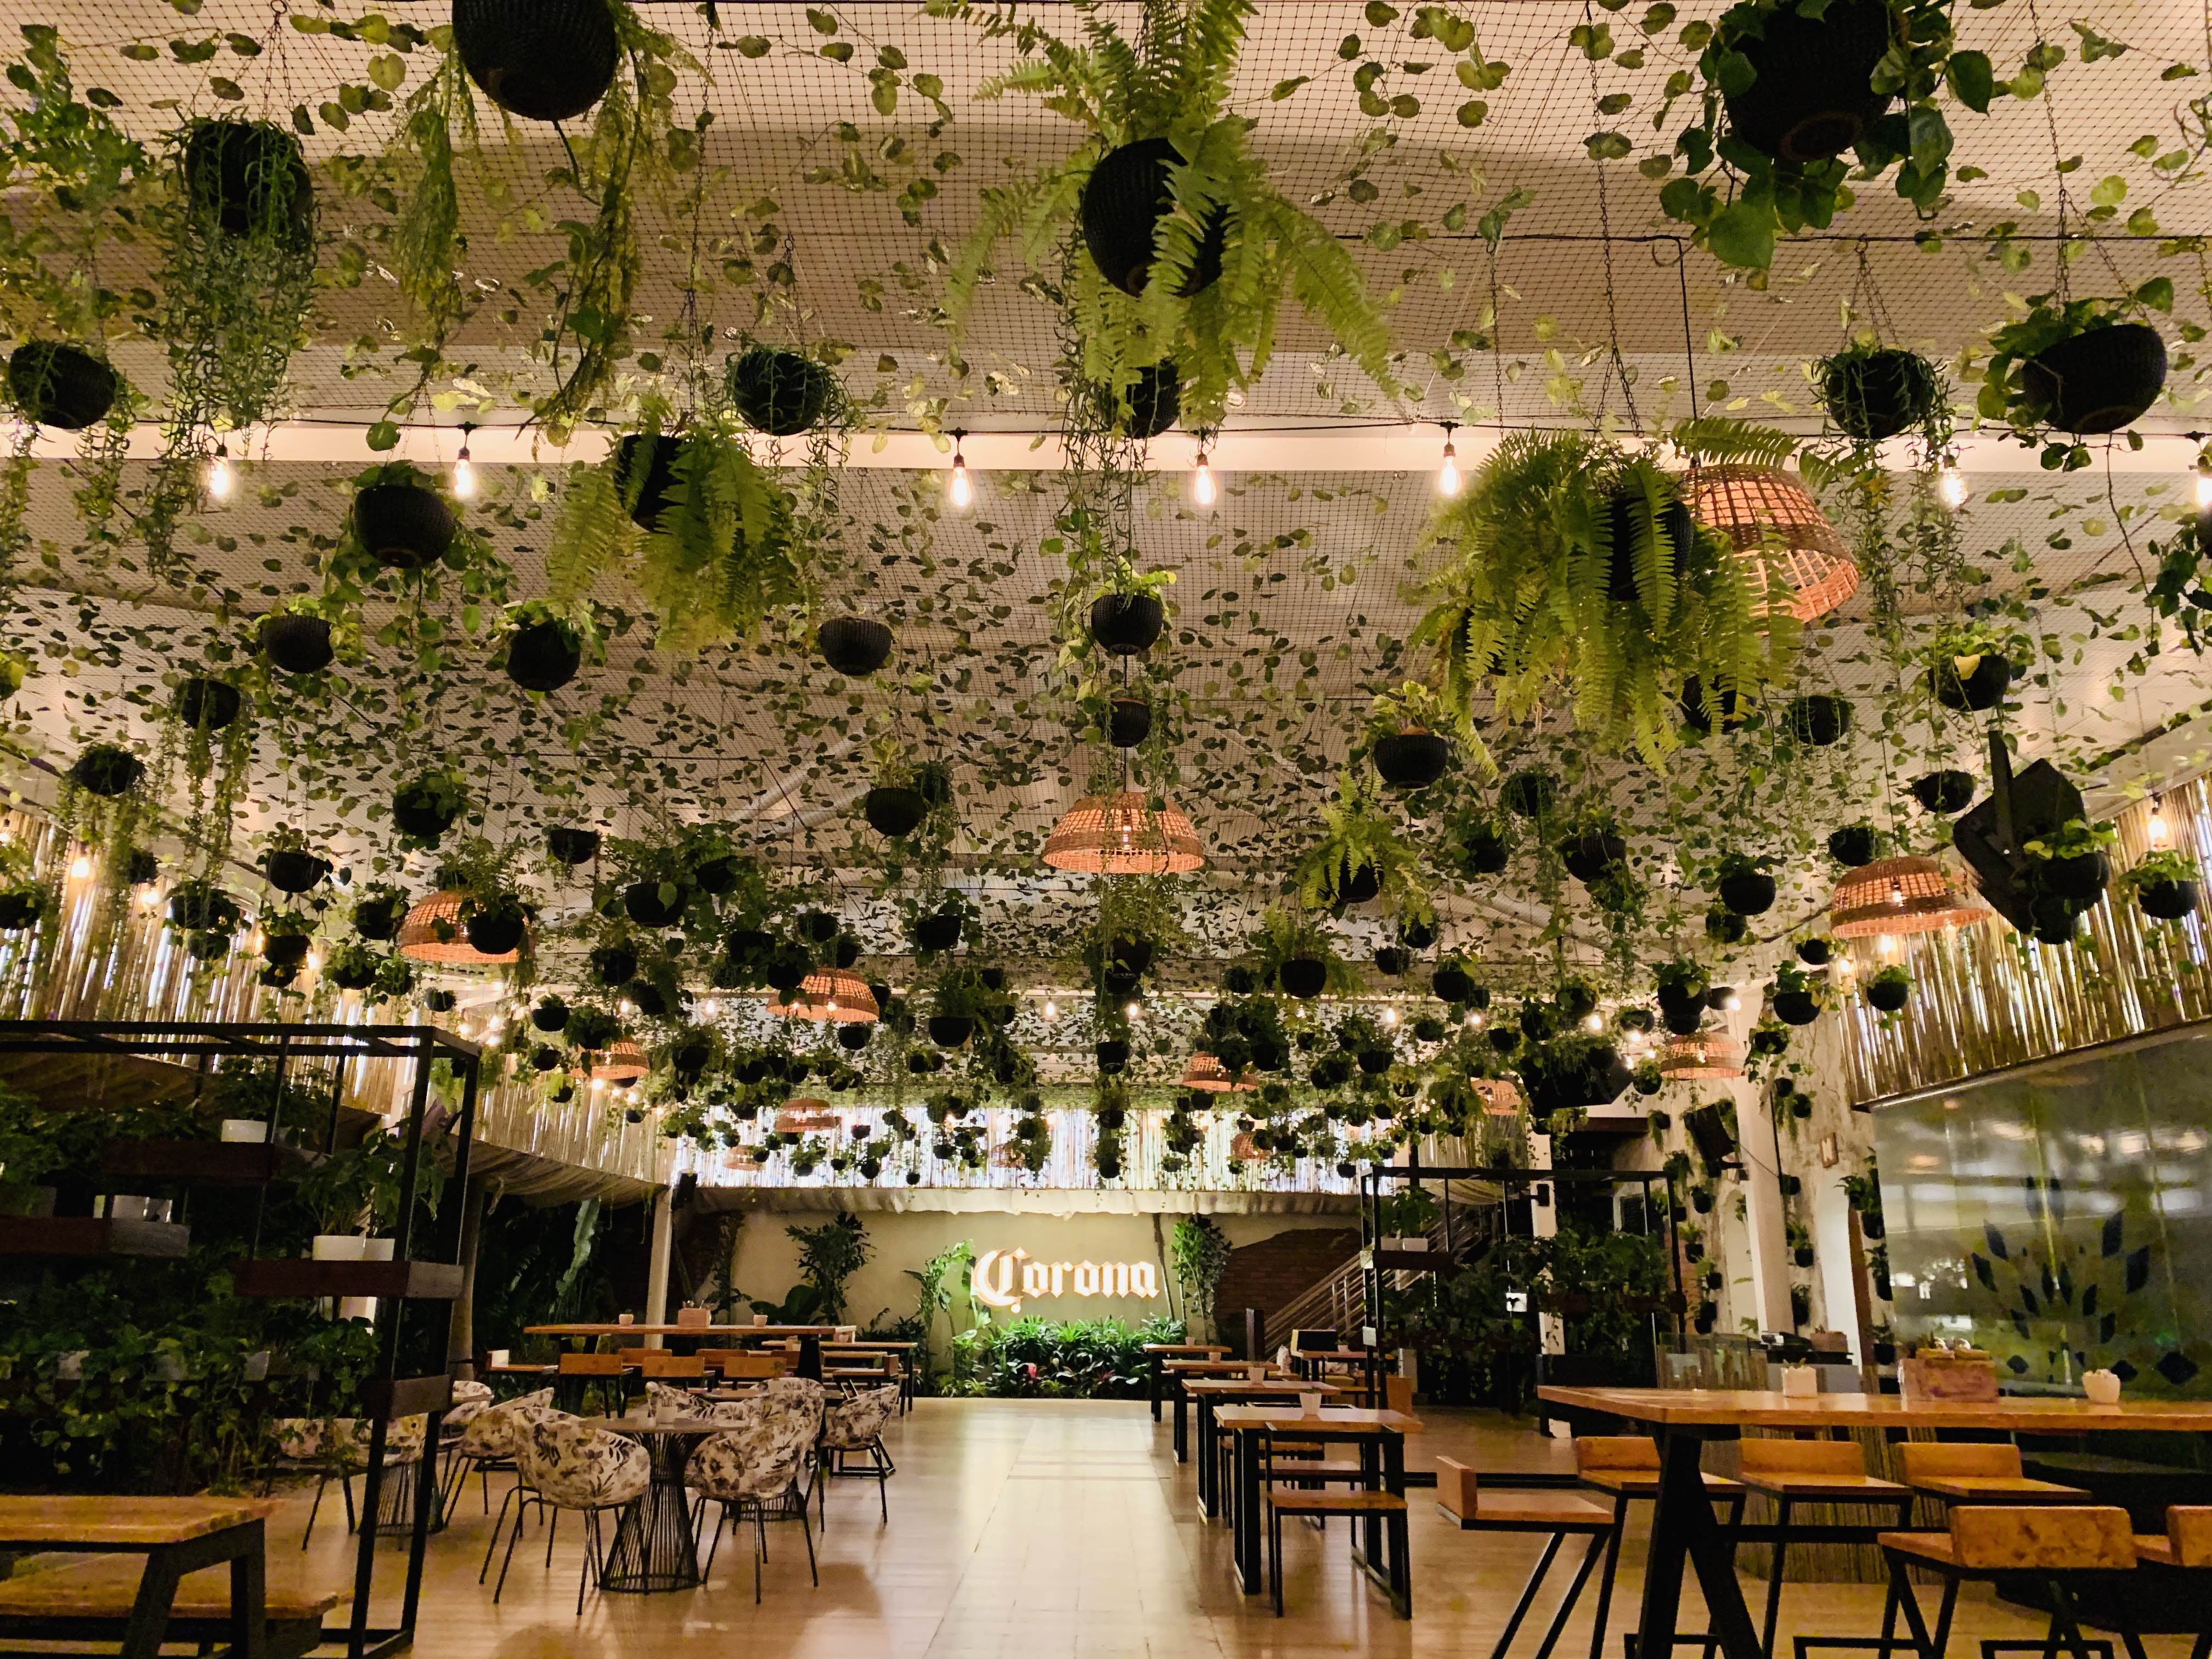 Building,Ceiling,Tree,Architecture,Function hall,Wedding reception,Interior design,Plant,Restaurant,Table